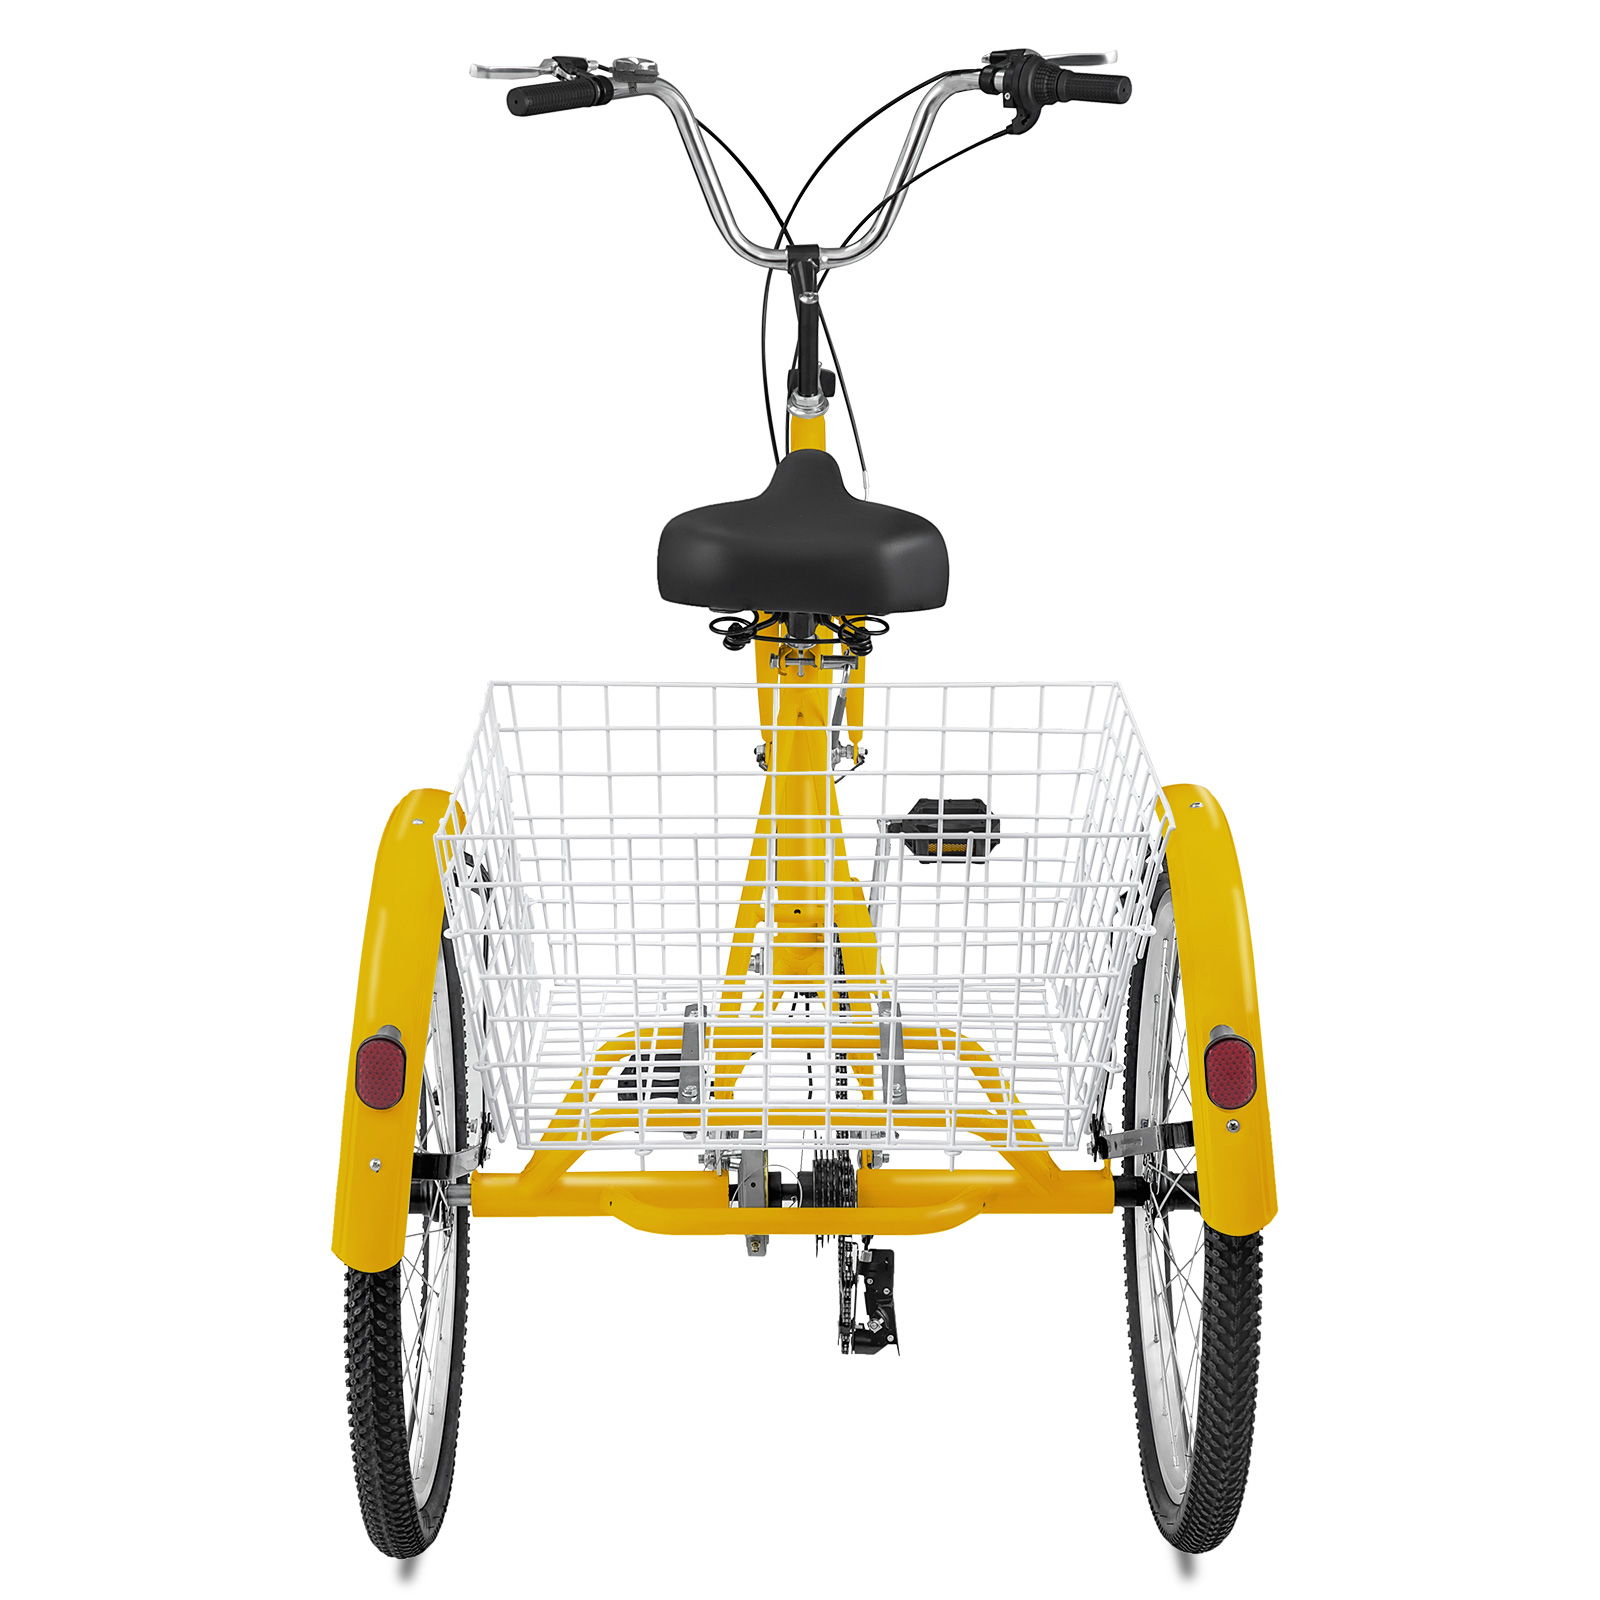 20-24-26-034-Adult-Tricycle-1-7-Speed-3-Wheel-Large-Basket-For-Shopping-Optional thumbnail 132